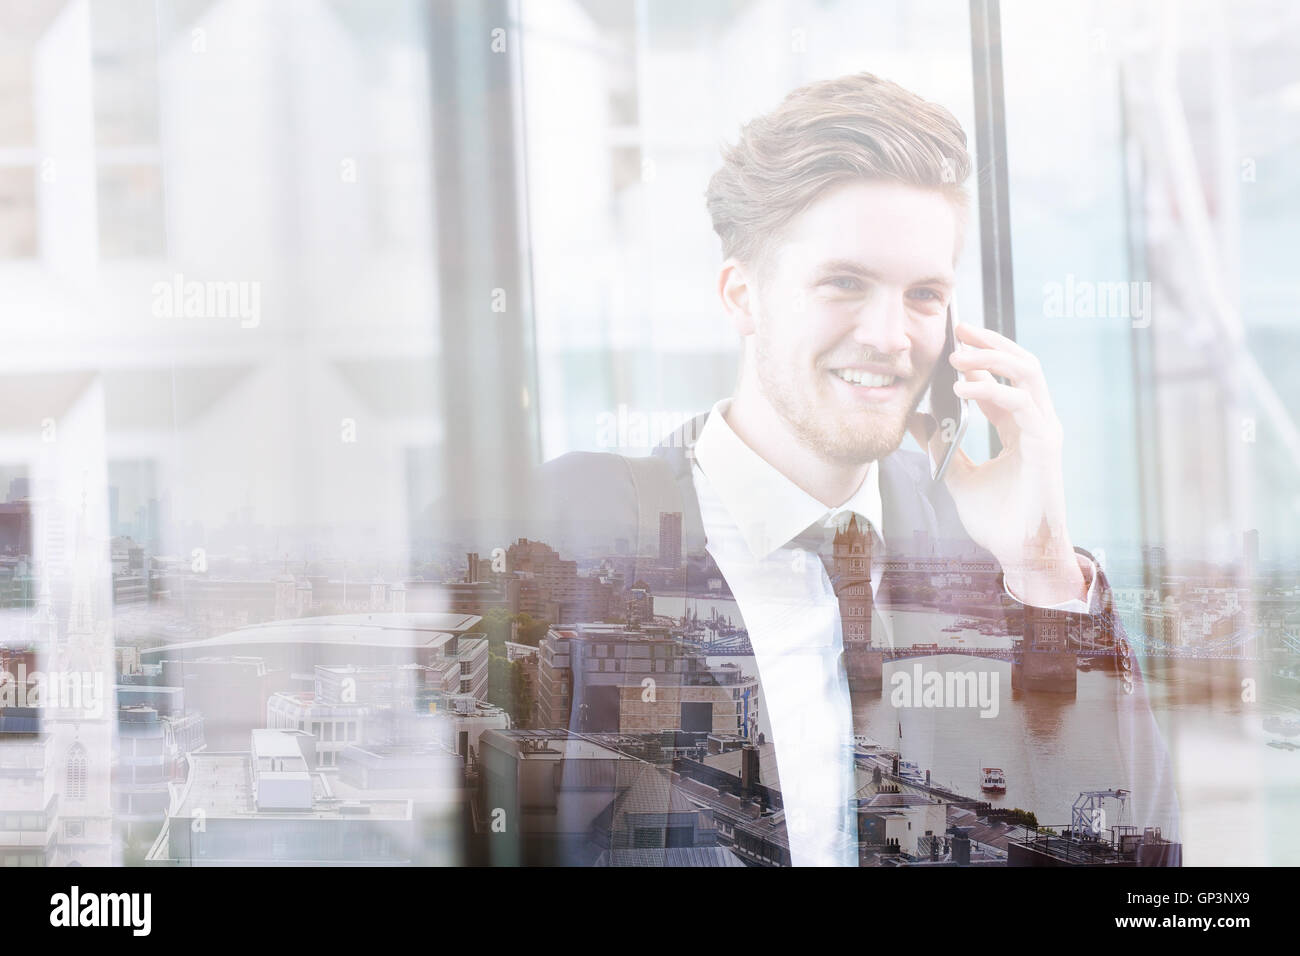 double exposure of business man talking by phone and London skyline panoramic view, cityscape - Stock Image